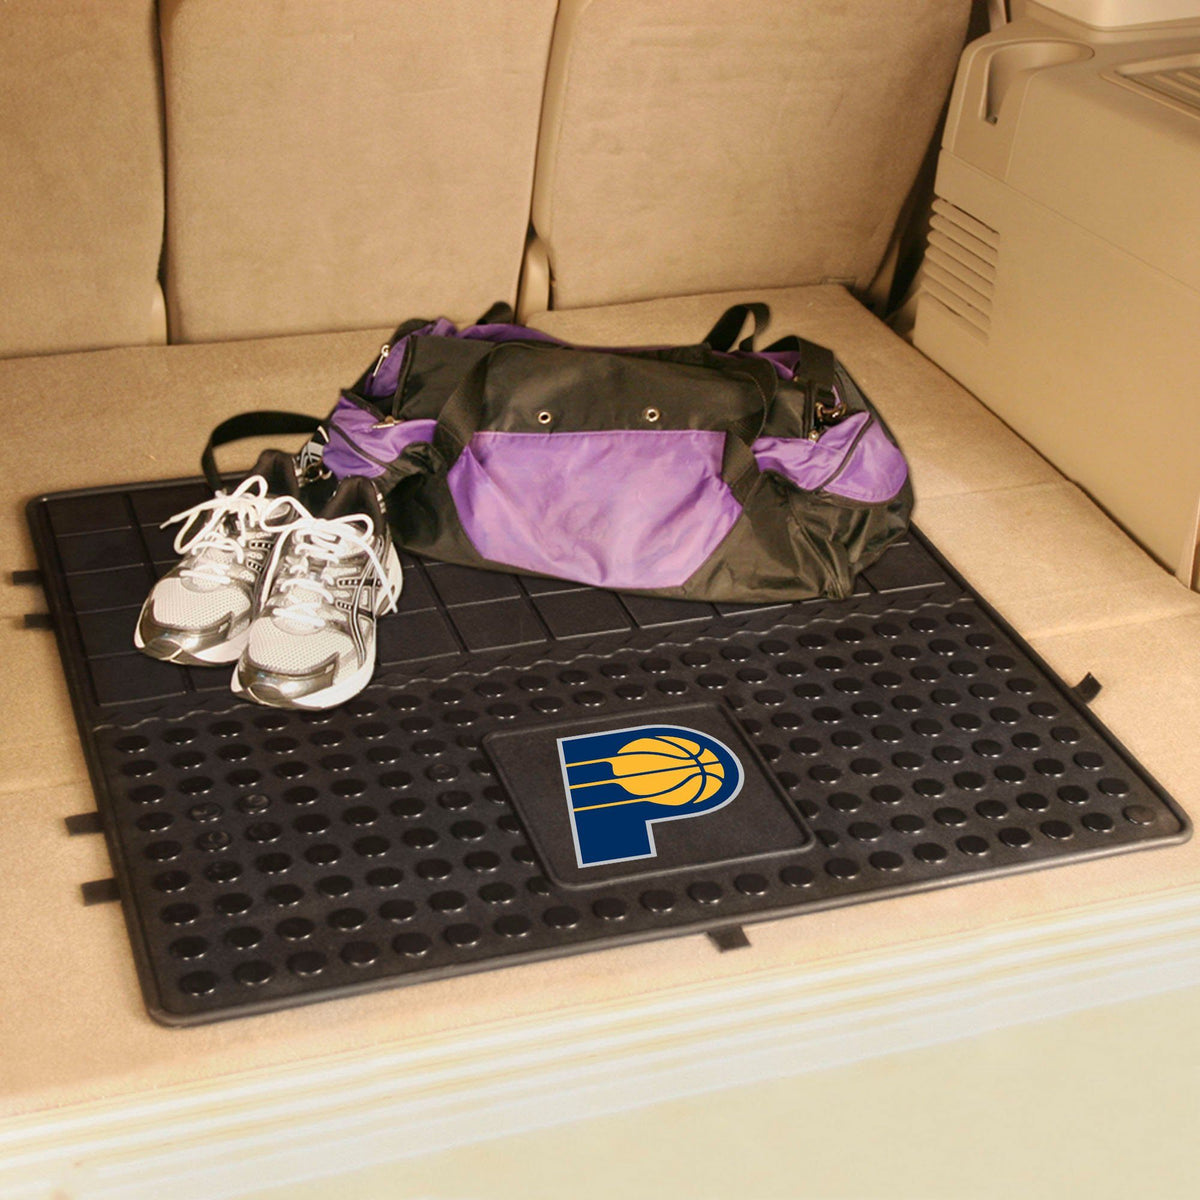 NBA - Heavy Duty Vinyl Cargo Mat NBA Mats, Trunk Mats, Heavy Duty Vinyl Cargo Mat, NBA, Auto Fan Mats Indiana Pacers